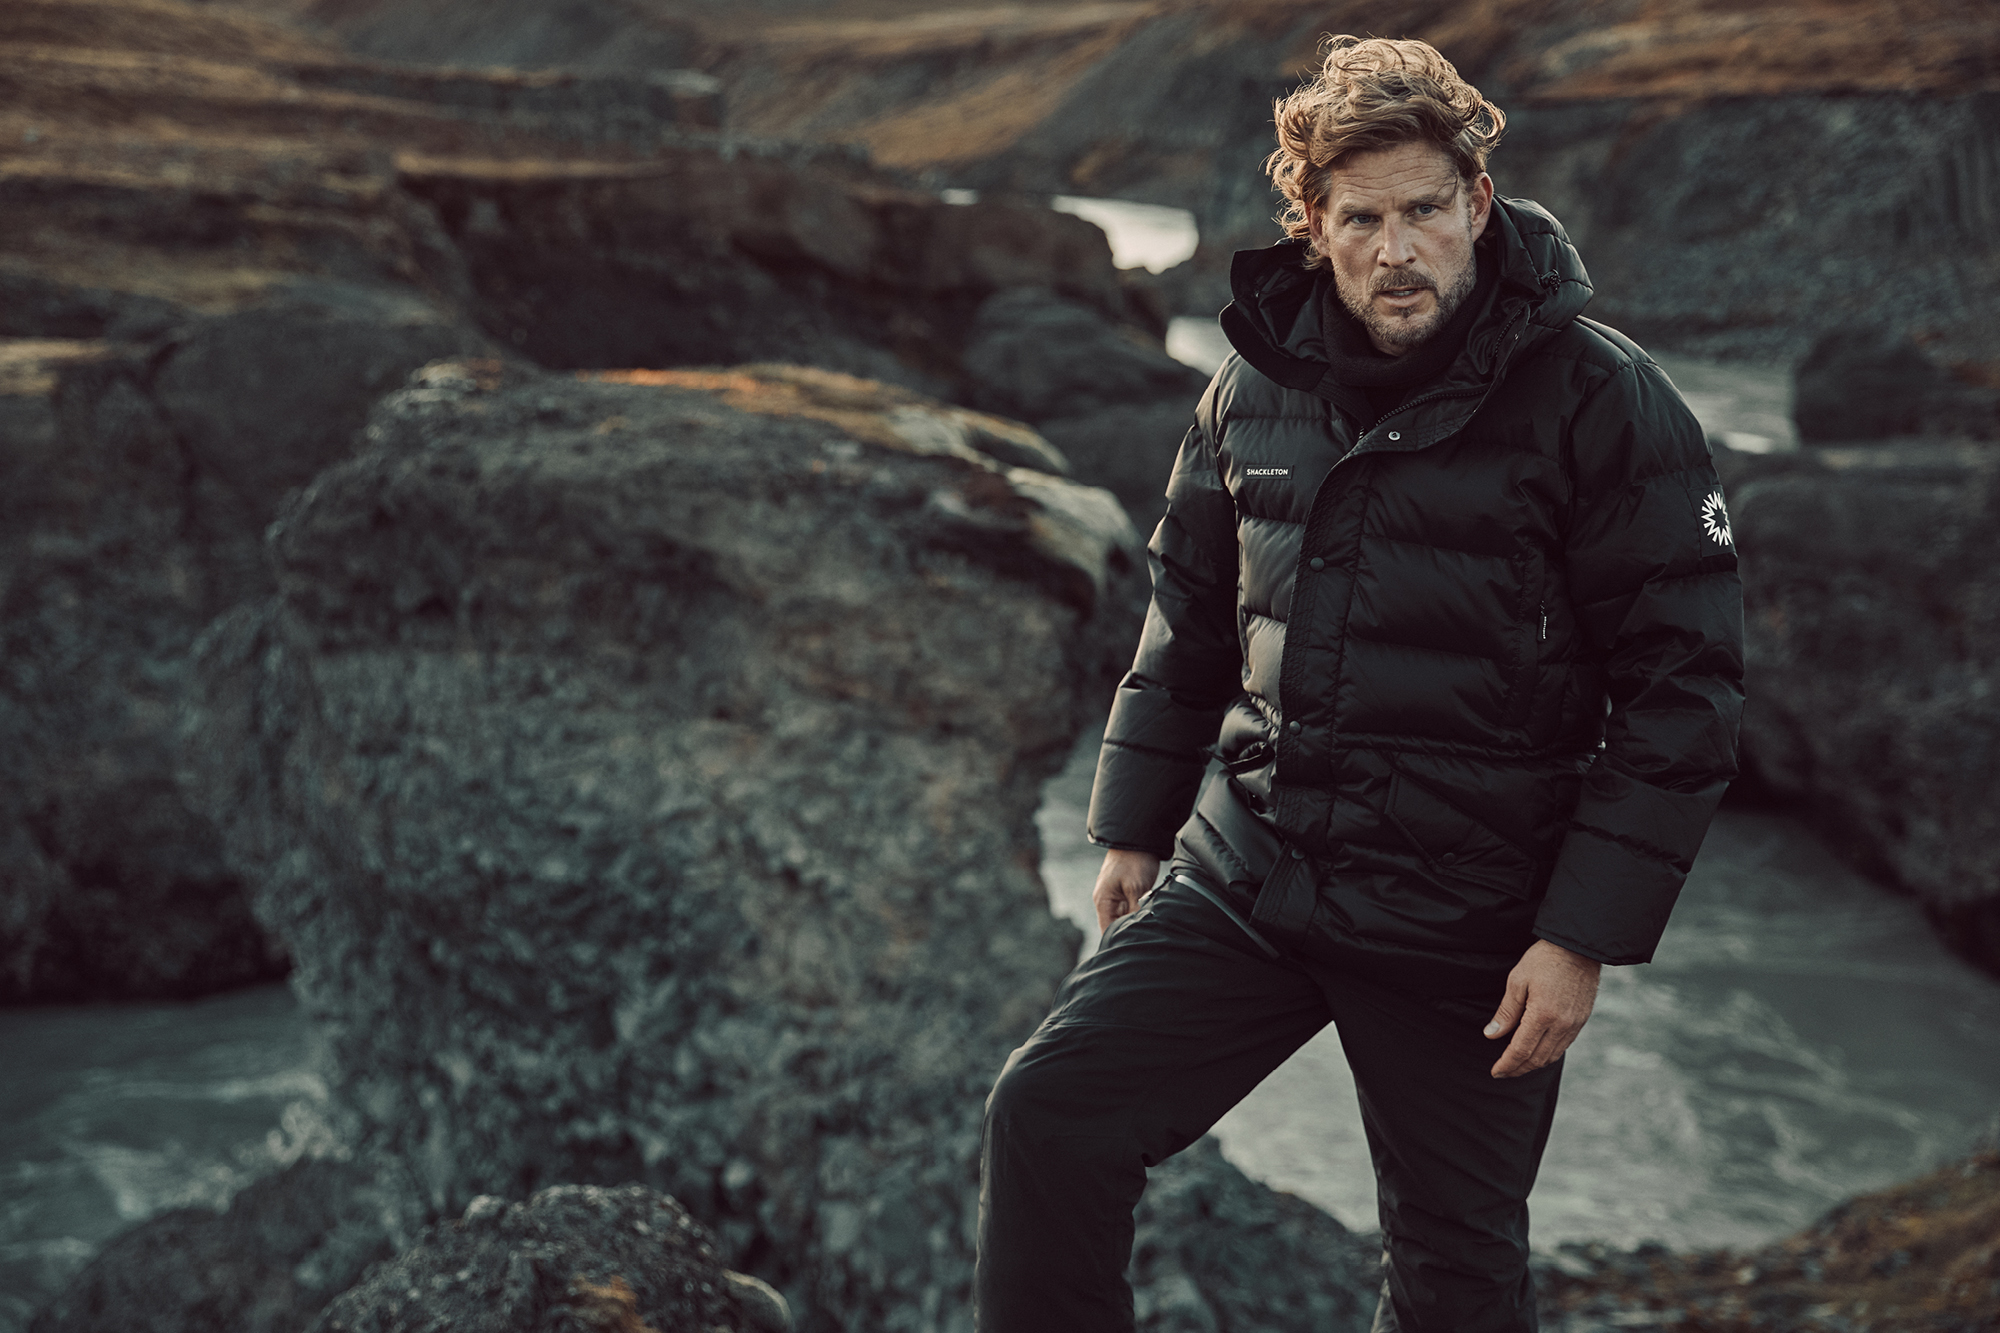 Shackleton makes expedition-grade apparel using the latest breakthrough performance materials